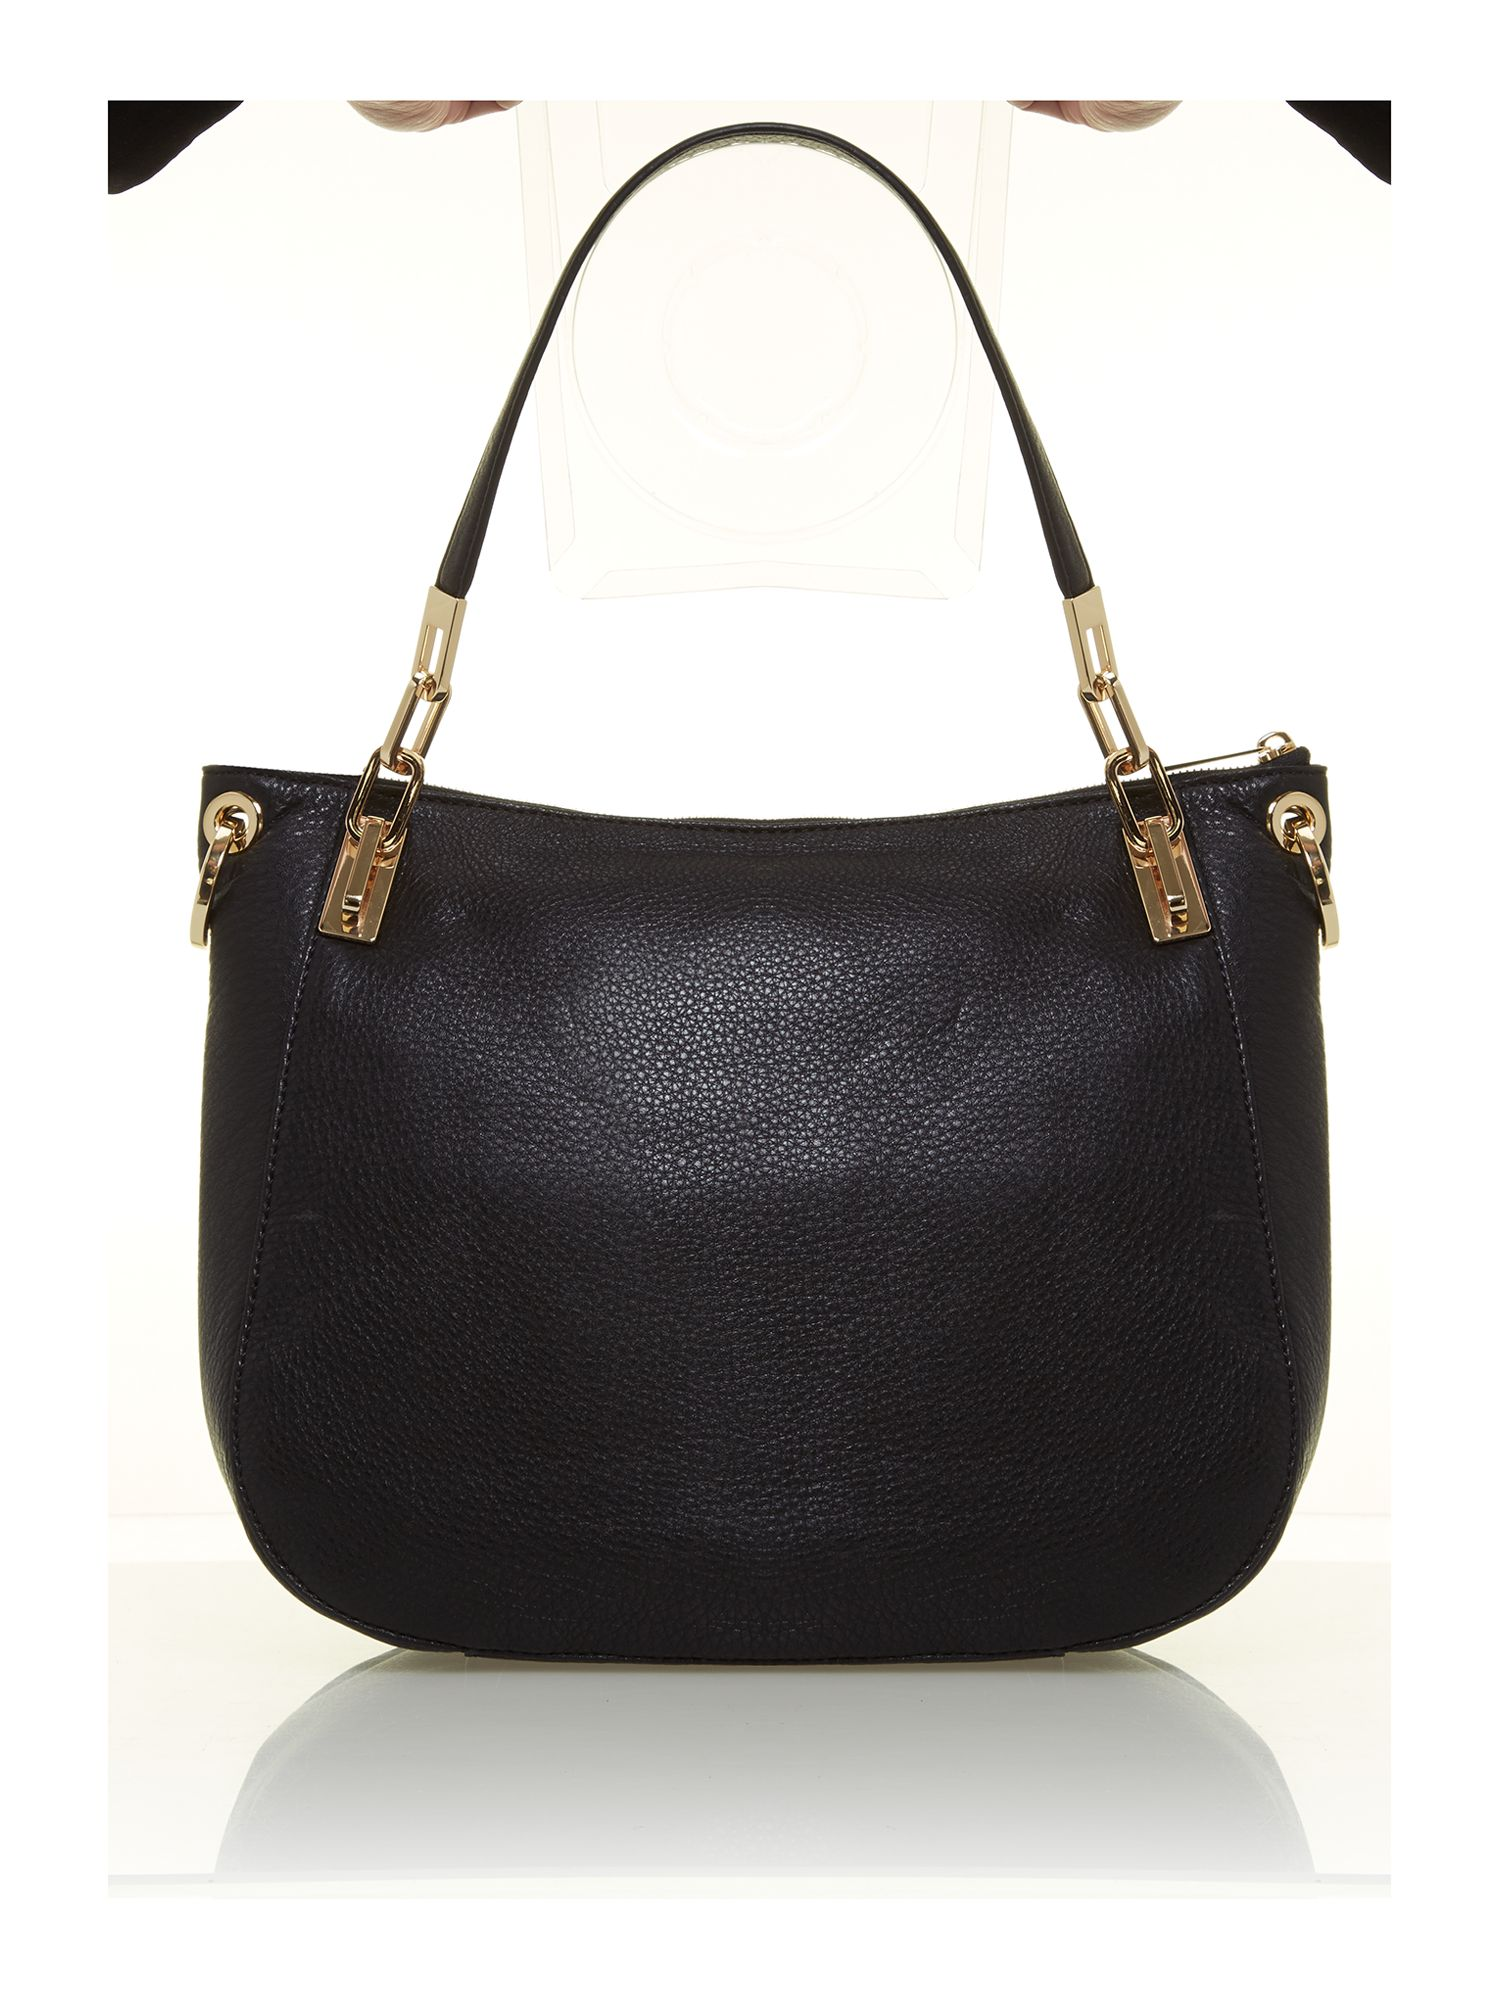 Brooke large black tote bag